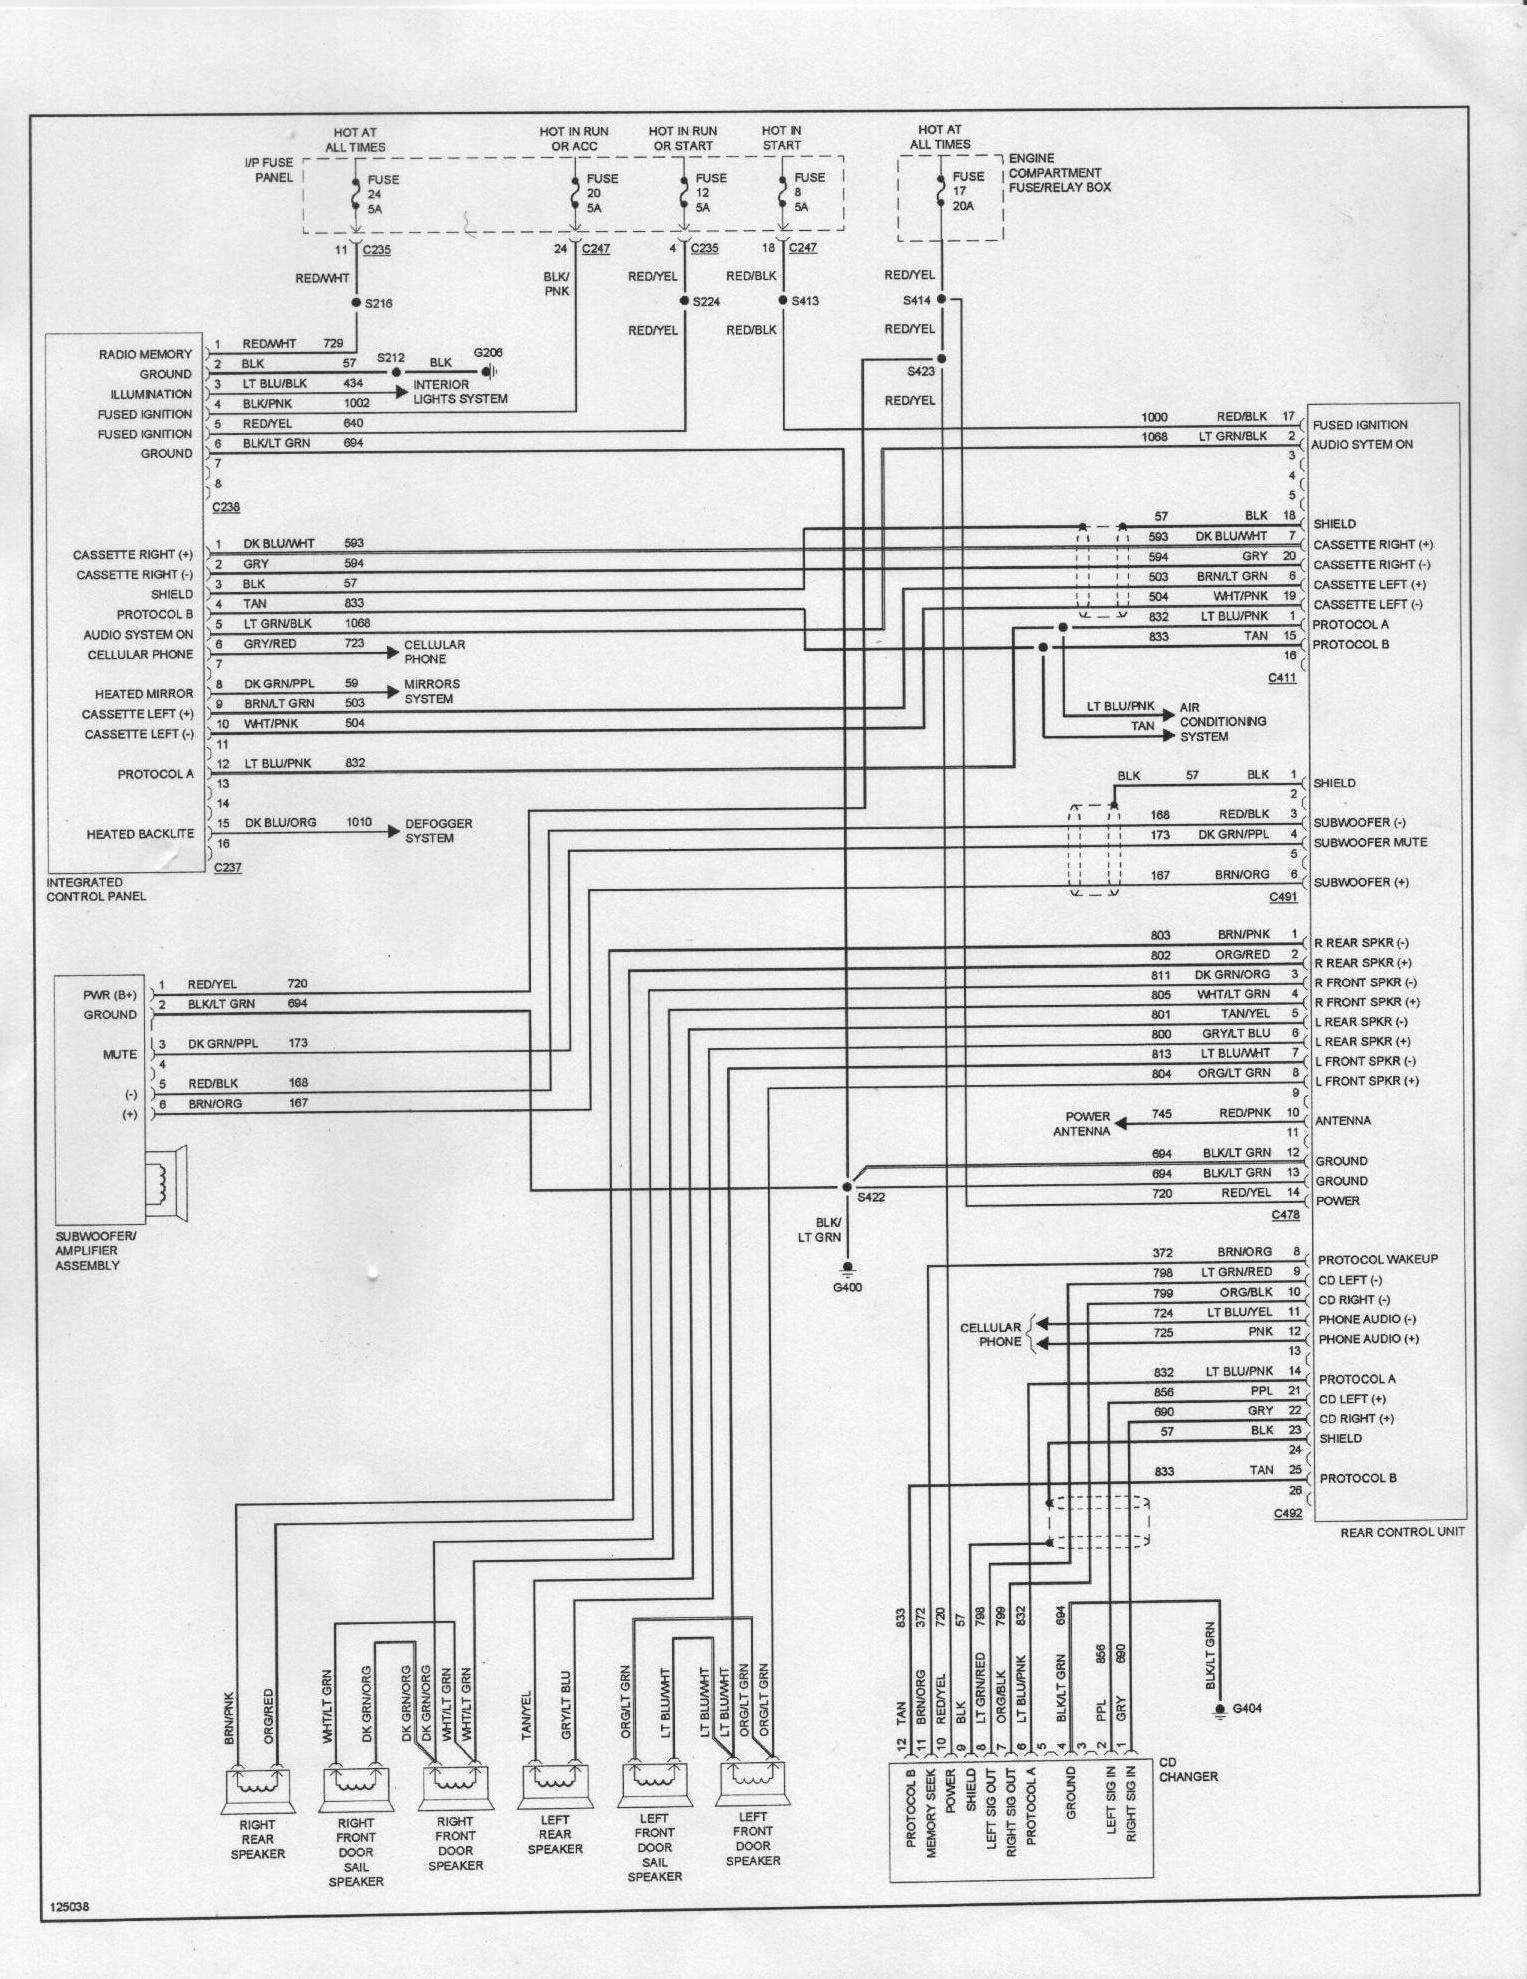 DIAGRAM] 02 Ford Taurus Wiring Diagram FULL Version HD Quality Wiring  Diagram - CRIATTIVADIAGRAMACAO.EYEPOWER.ITcriattivadiagramacao.eyepower.it